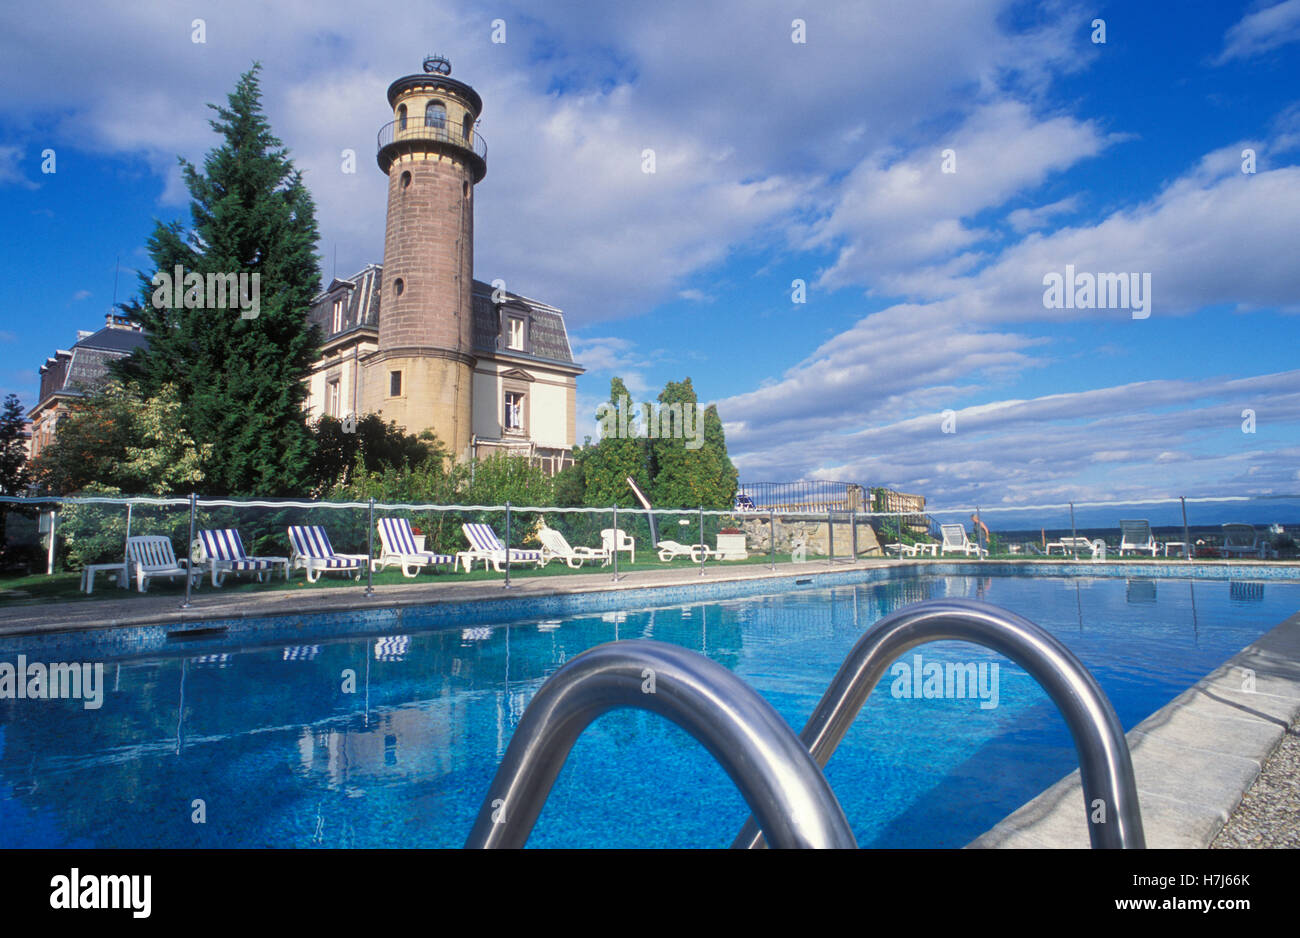 Pool At The Chateau Du0027Isenbourg Castle Hotel, Rouflach, Alsace, France,  Europe